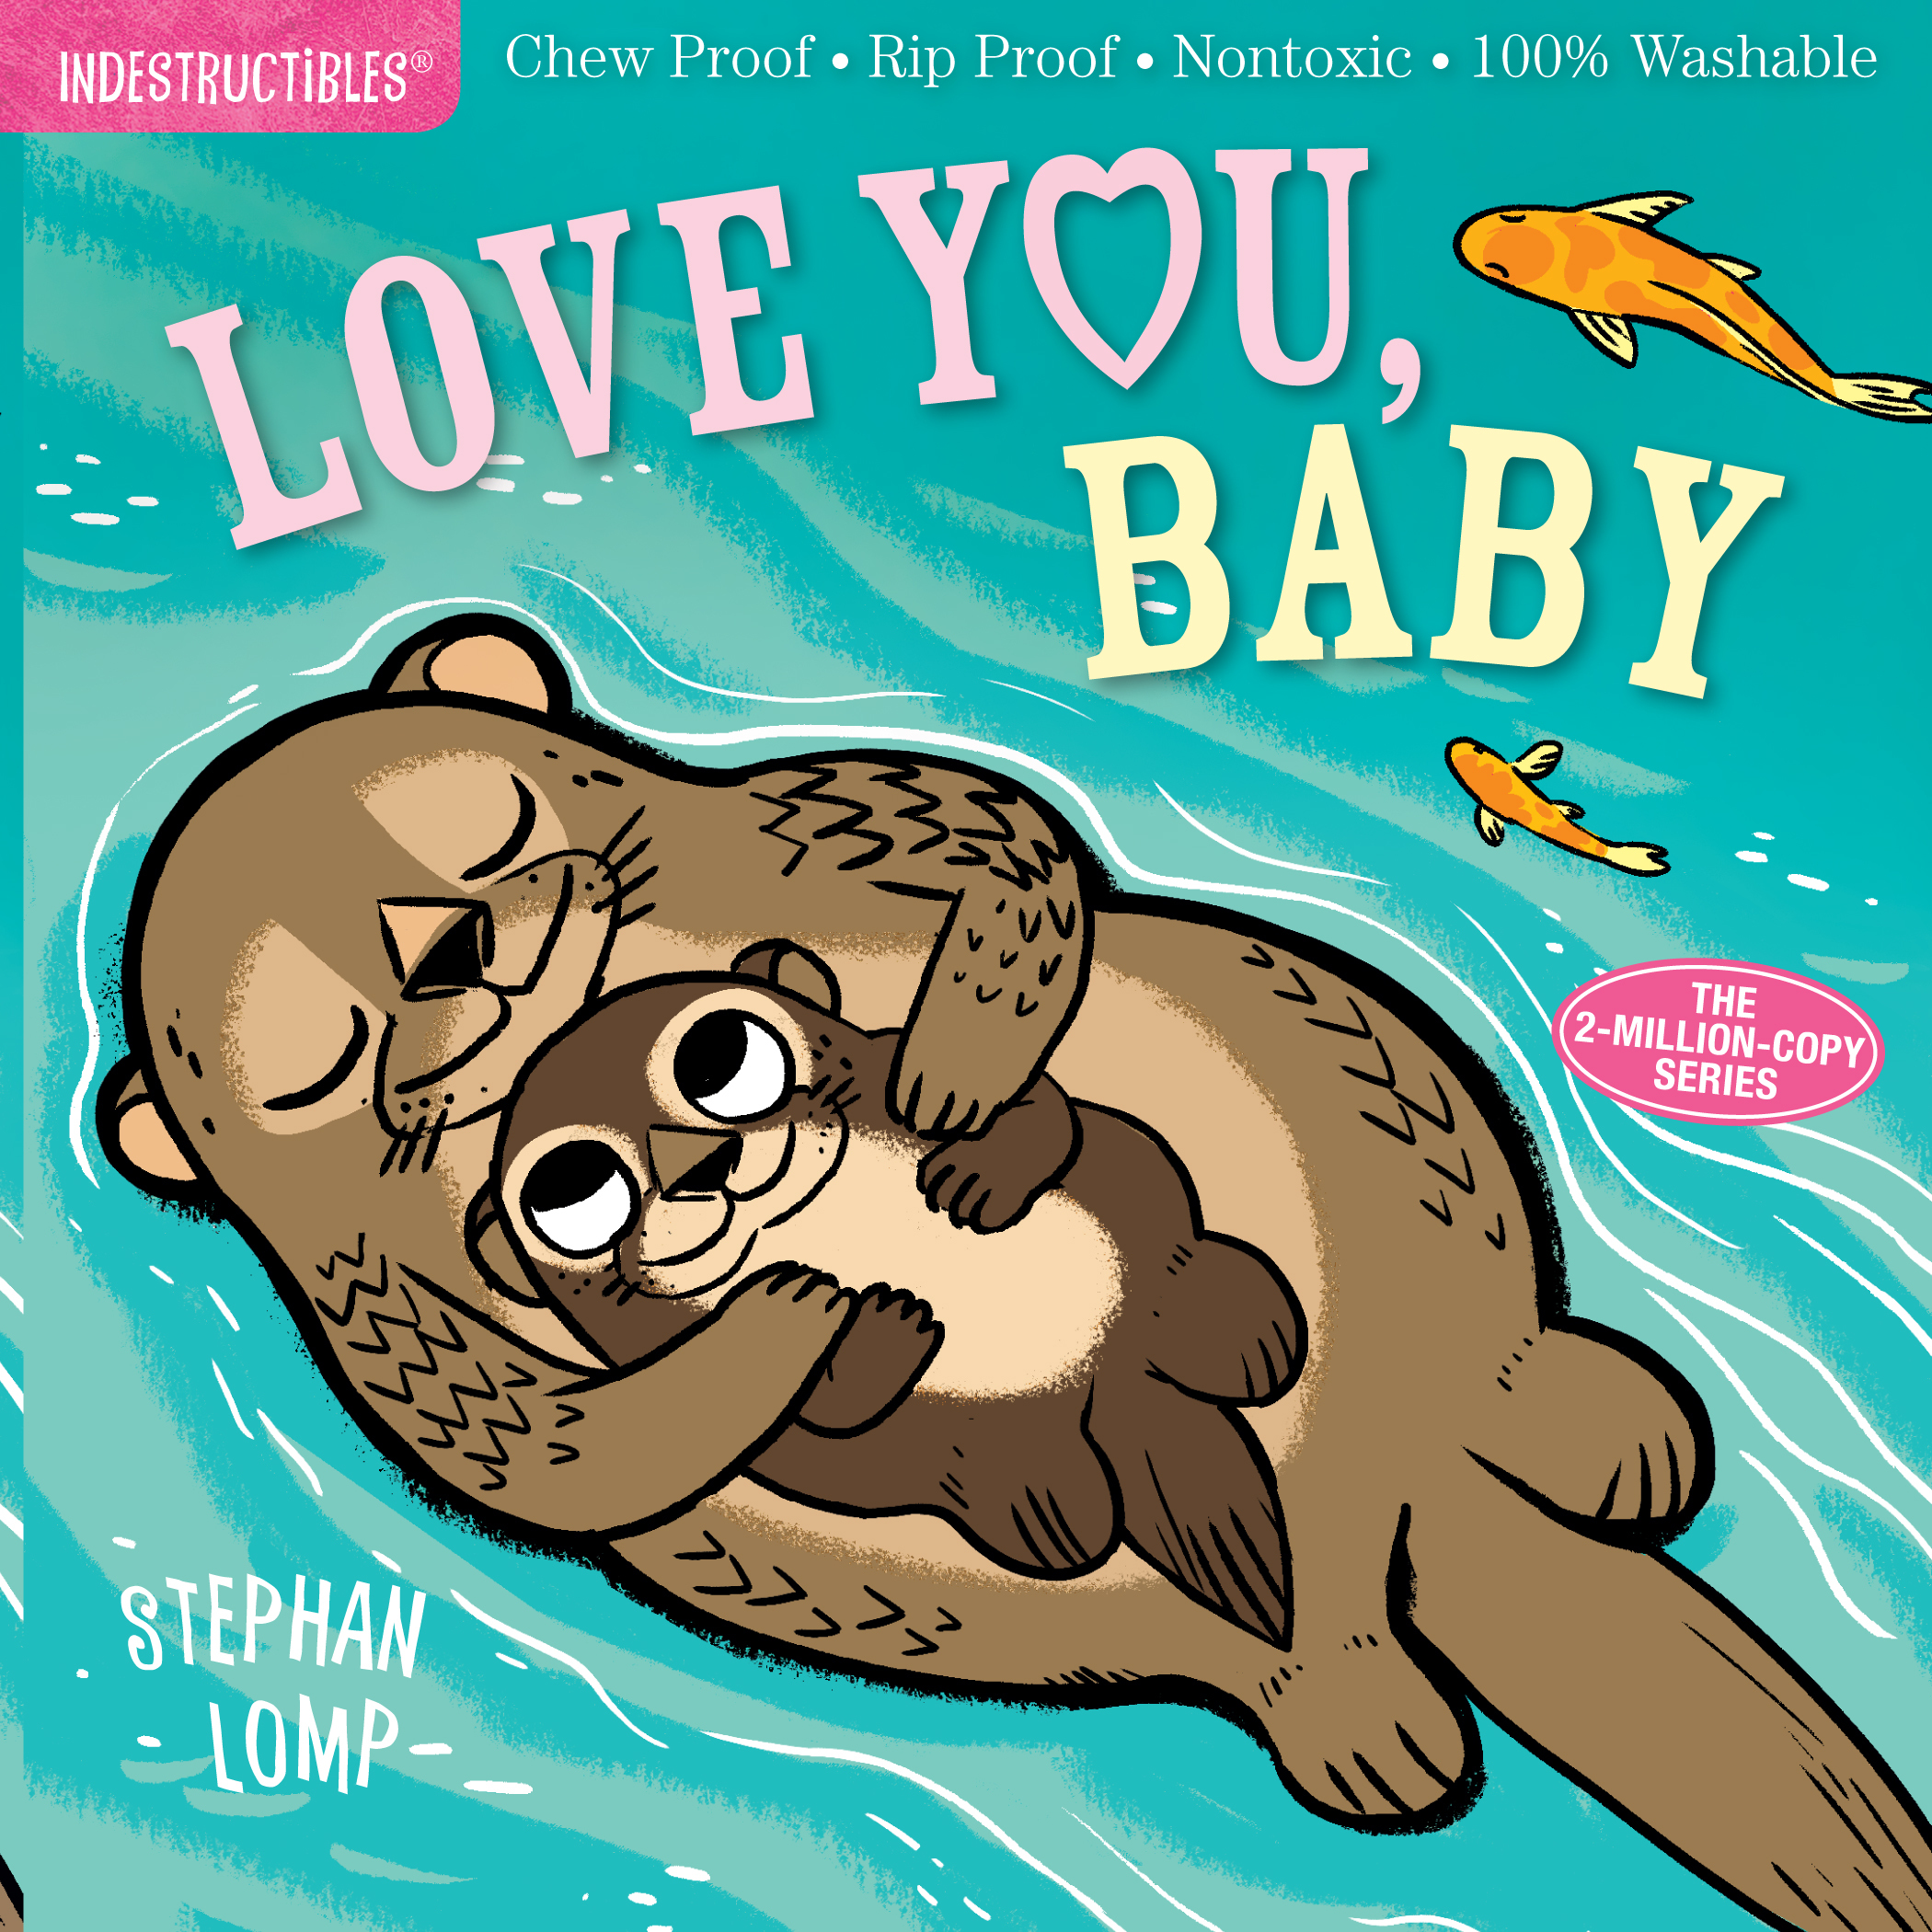 Indestructibles: Love You, Baby by Stephan Lomp.